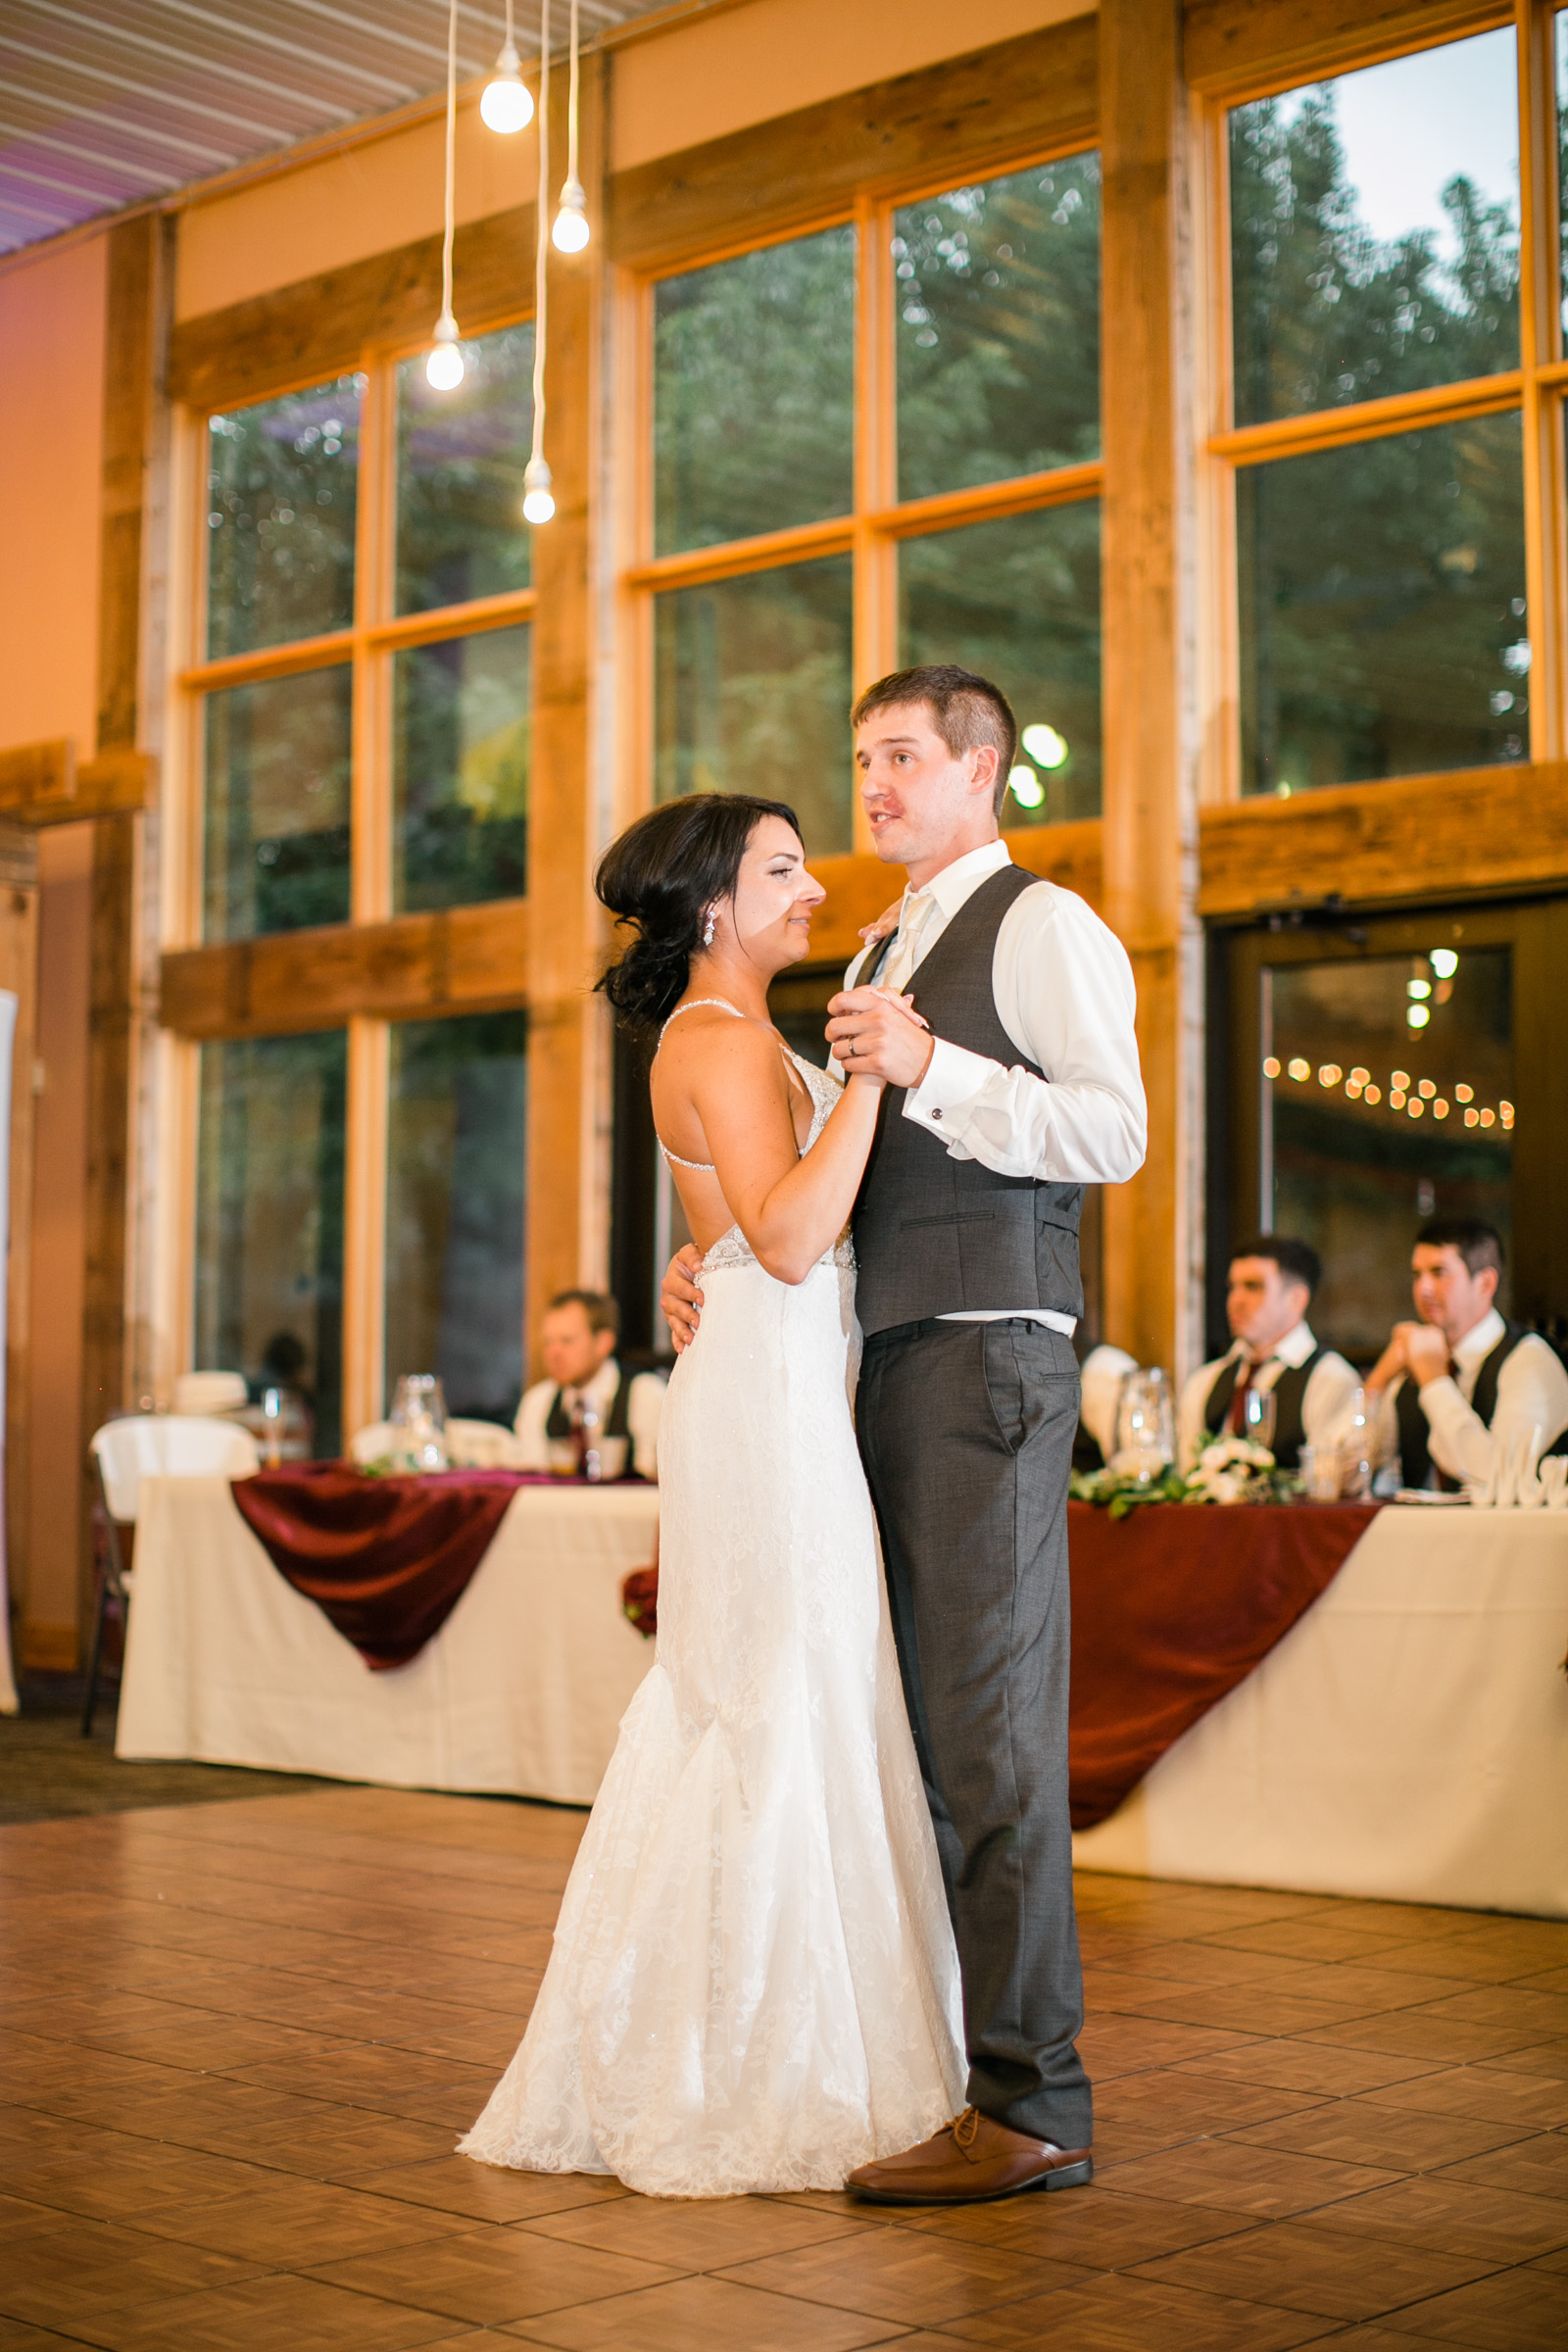 bride-groom-first-dance-wedding-winery-sunset